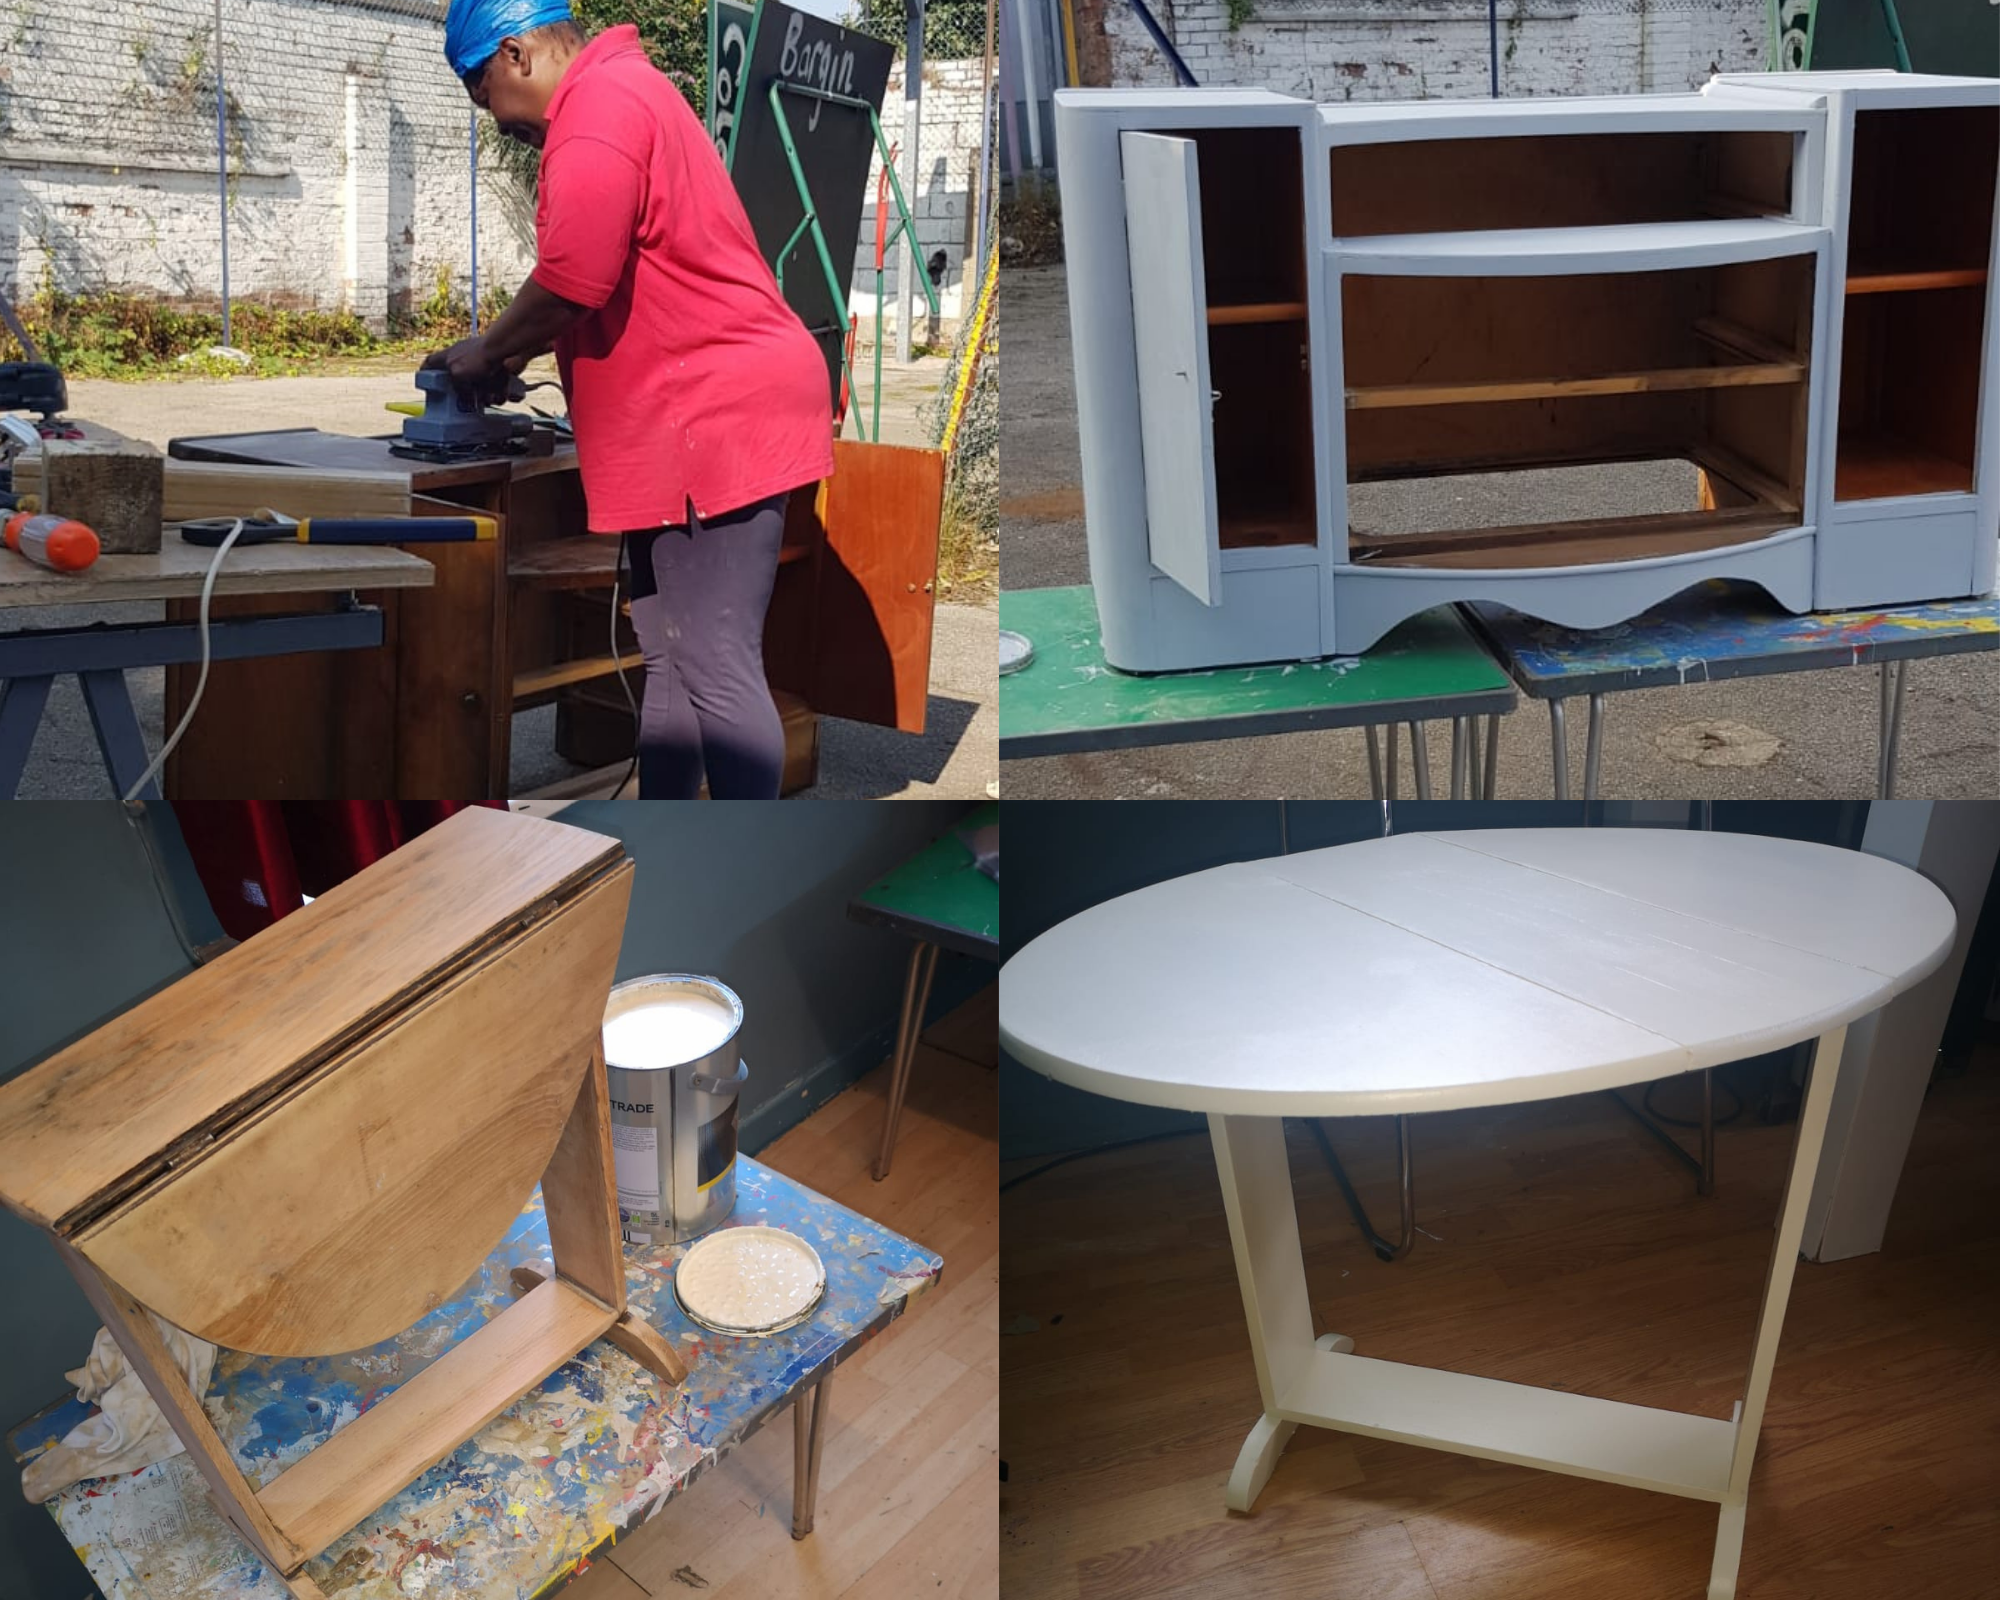 Furniture upcycling at Community RePaint Sandwell and Soho